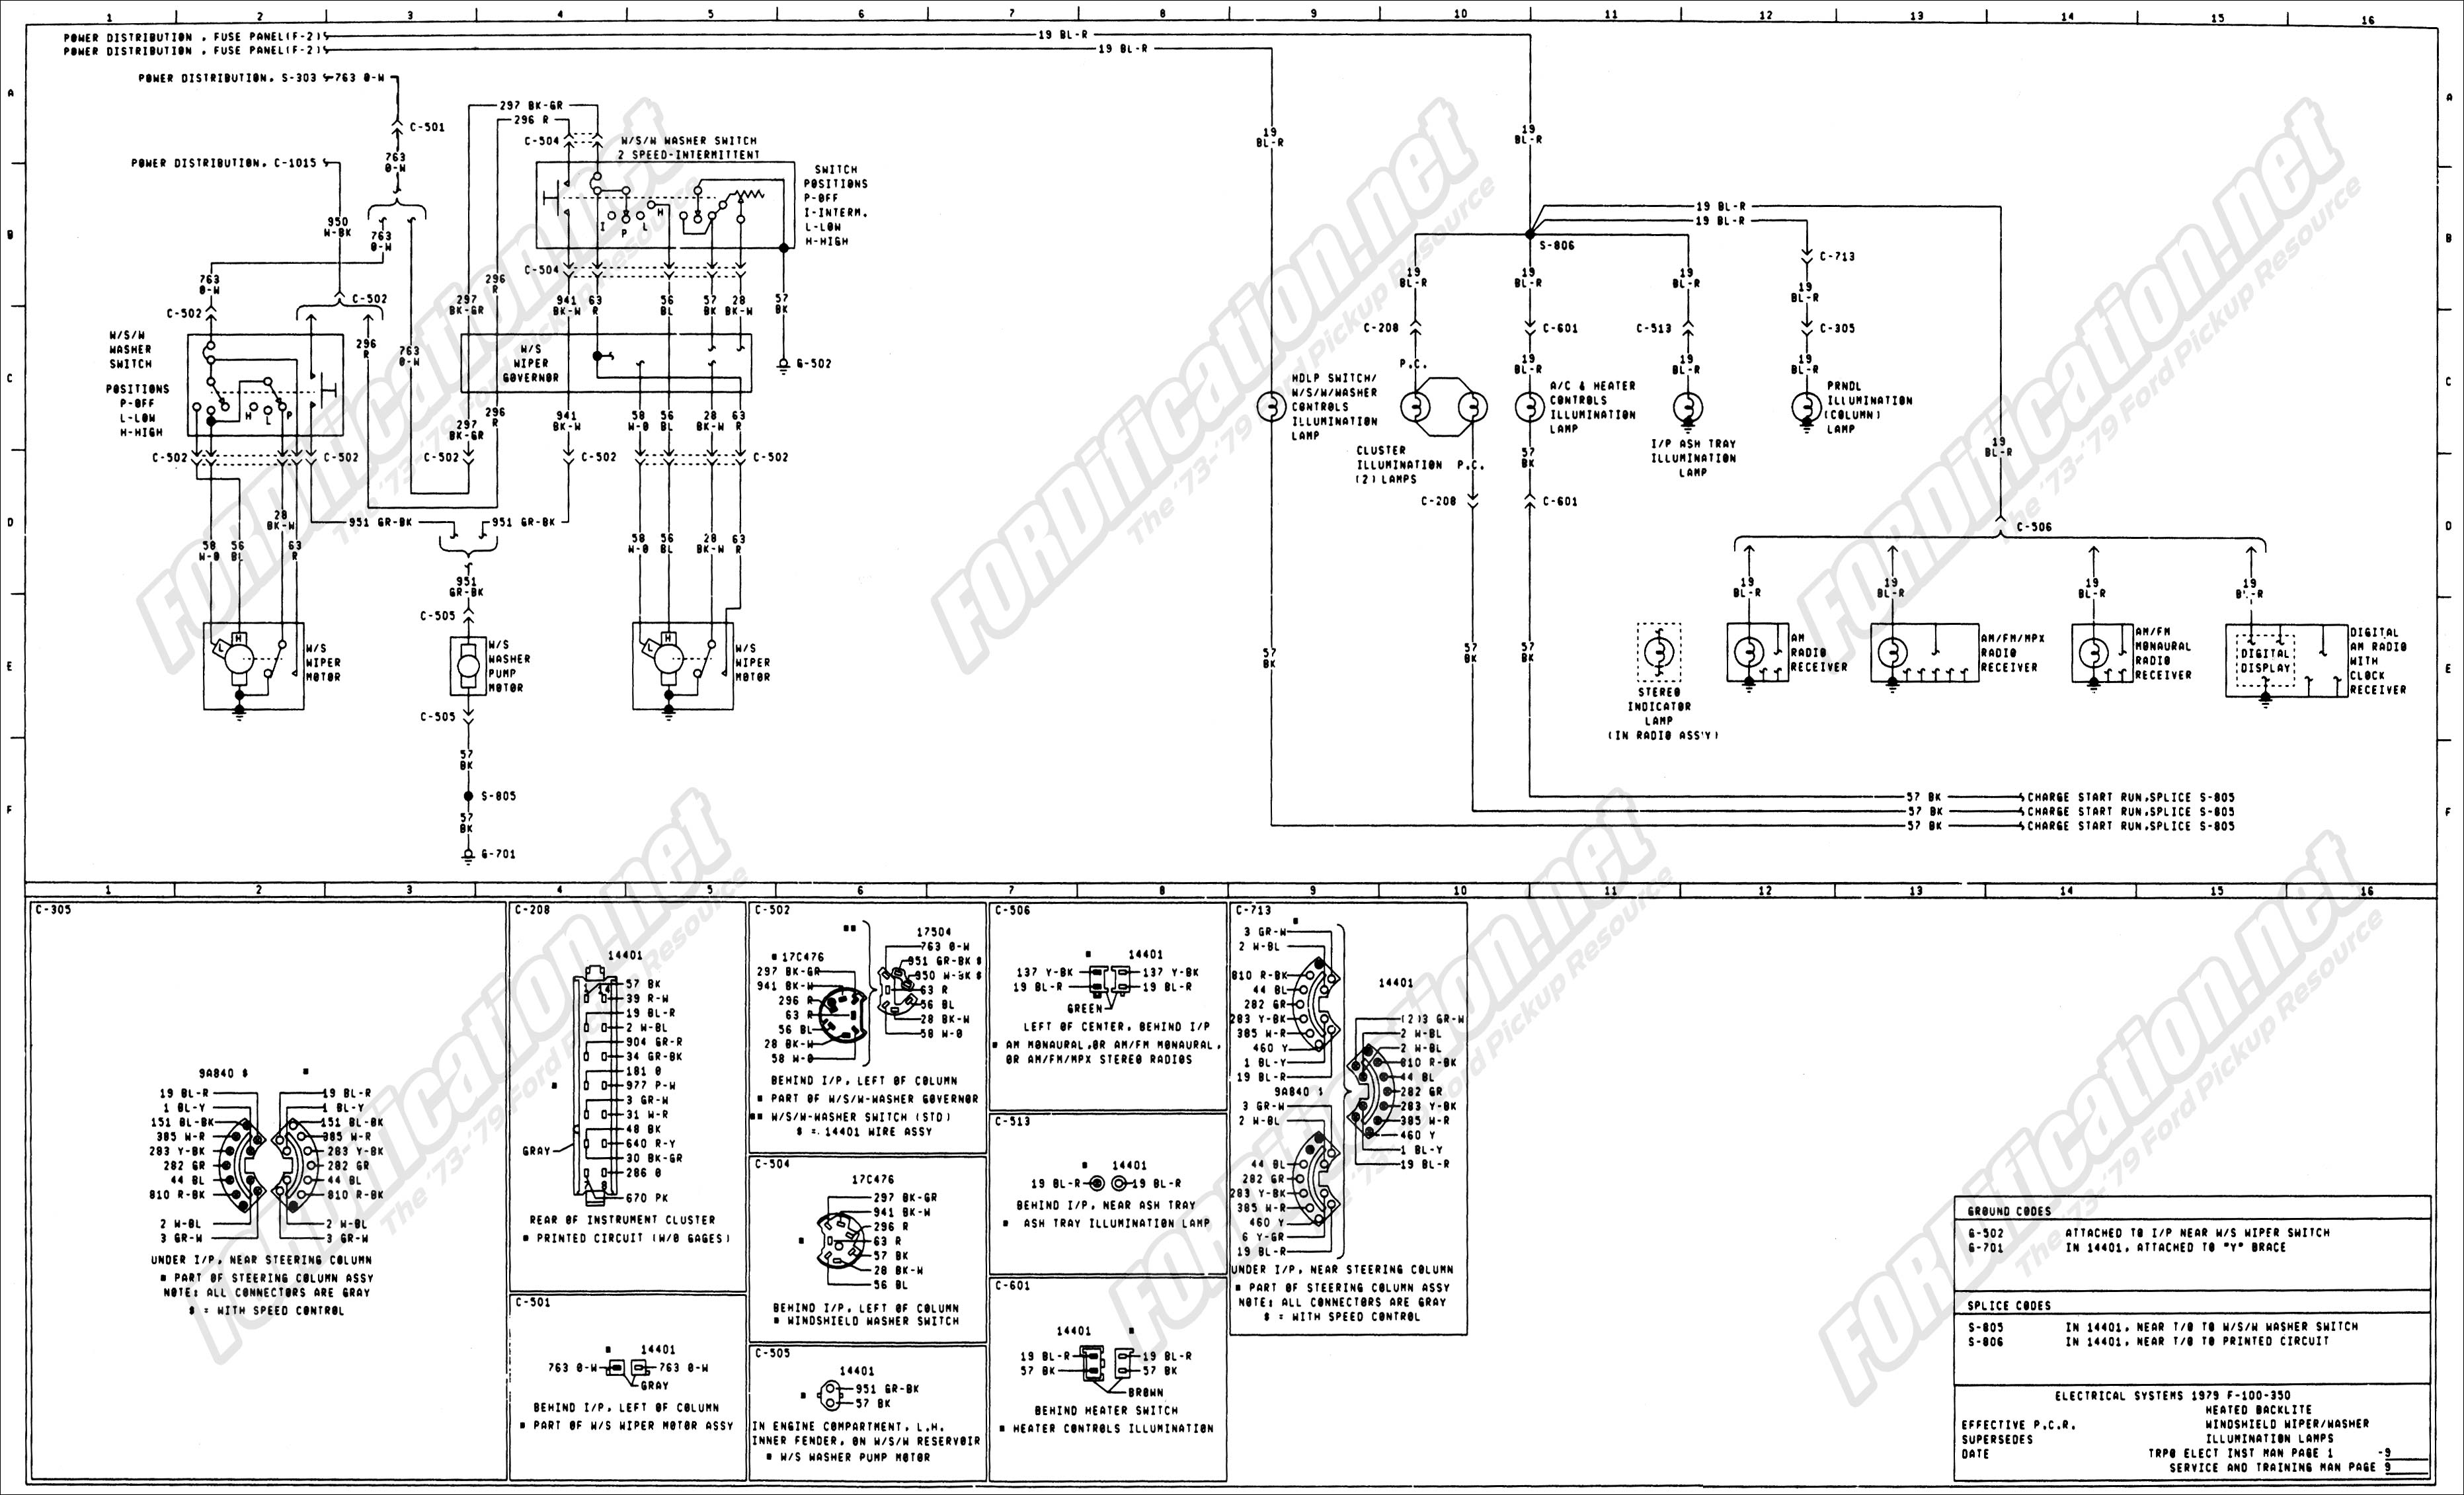 wiring_79master_9of9 ford 460 engine diagram wiring diagram simonand wiring diagrams for ford trucks at virtualis.co